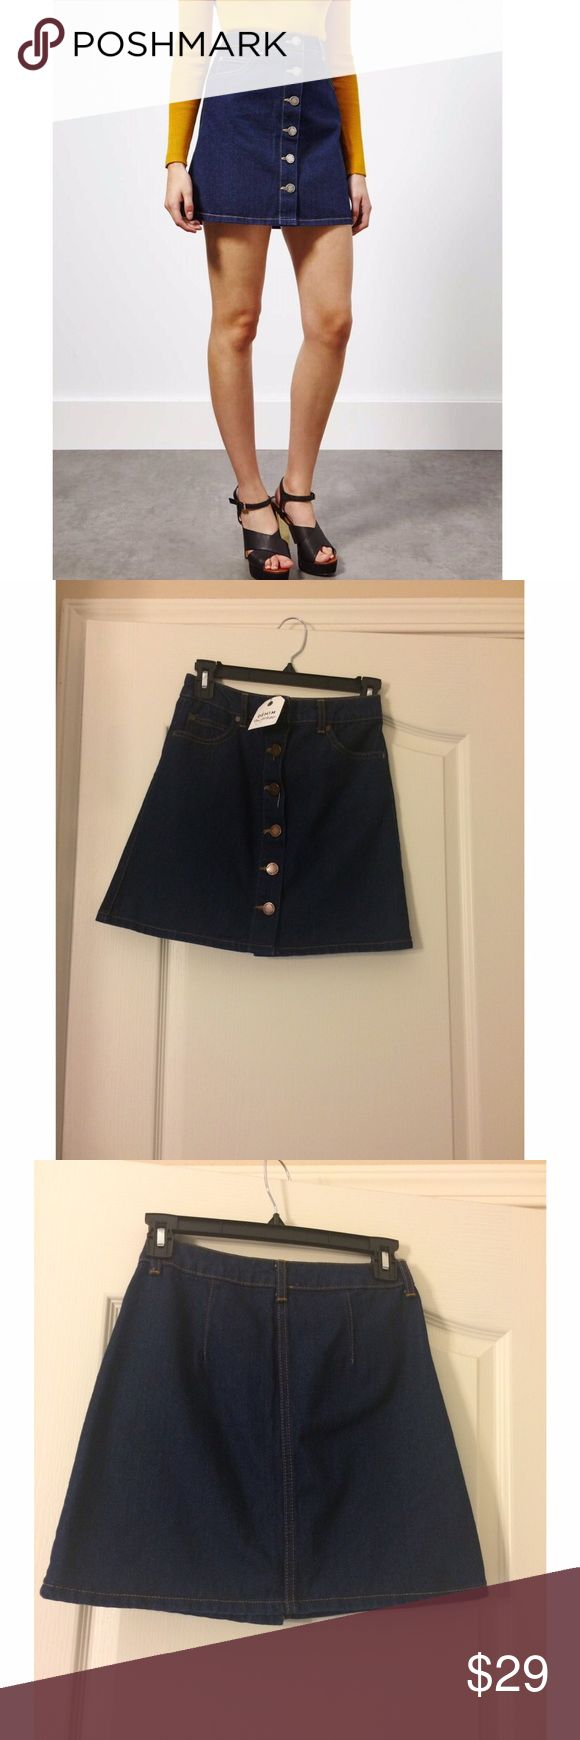 NWT MISS SELFRIDGE denim skirt jean skirt button down. Size 2 NEW WITH TAGS 🎈SALE Skirts